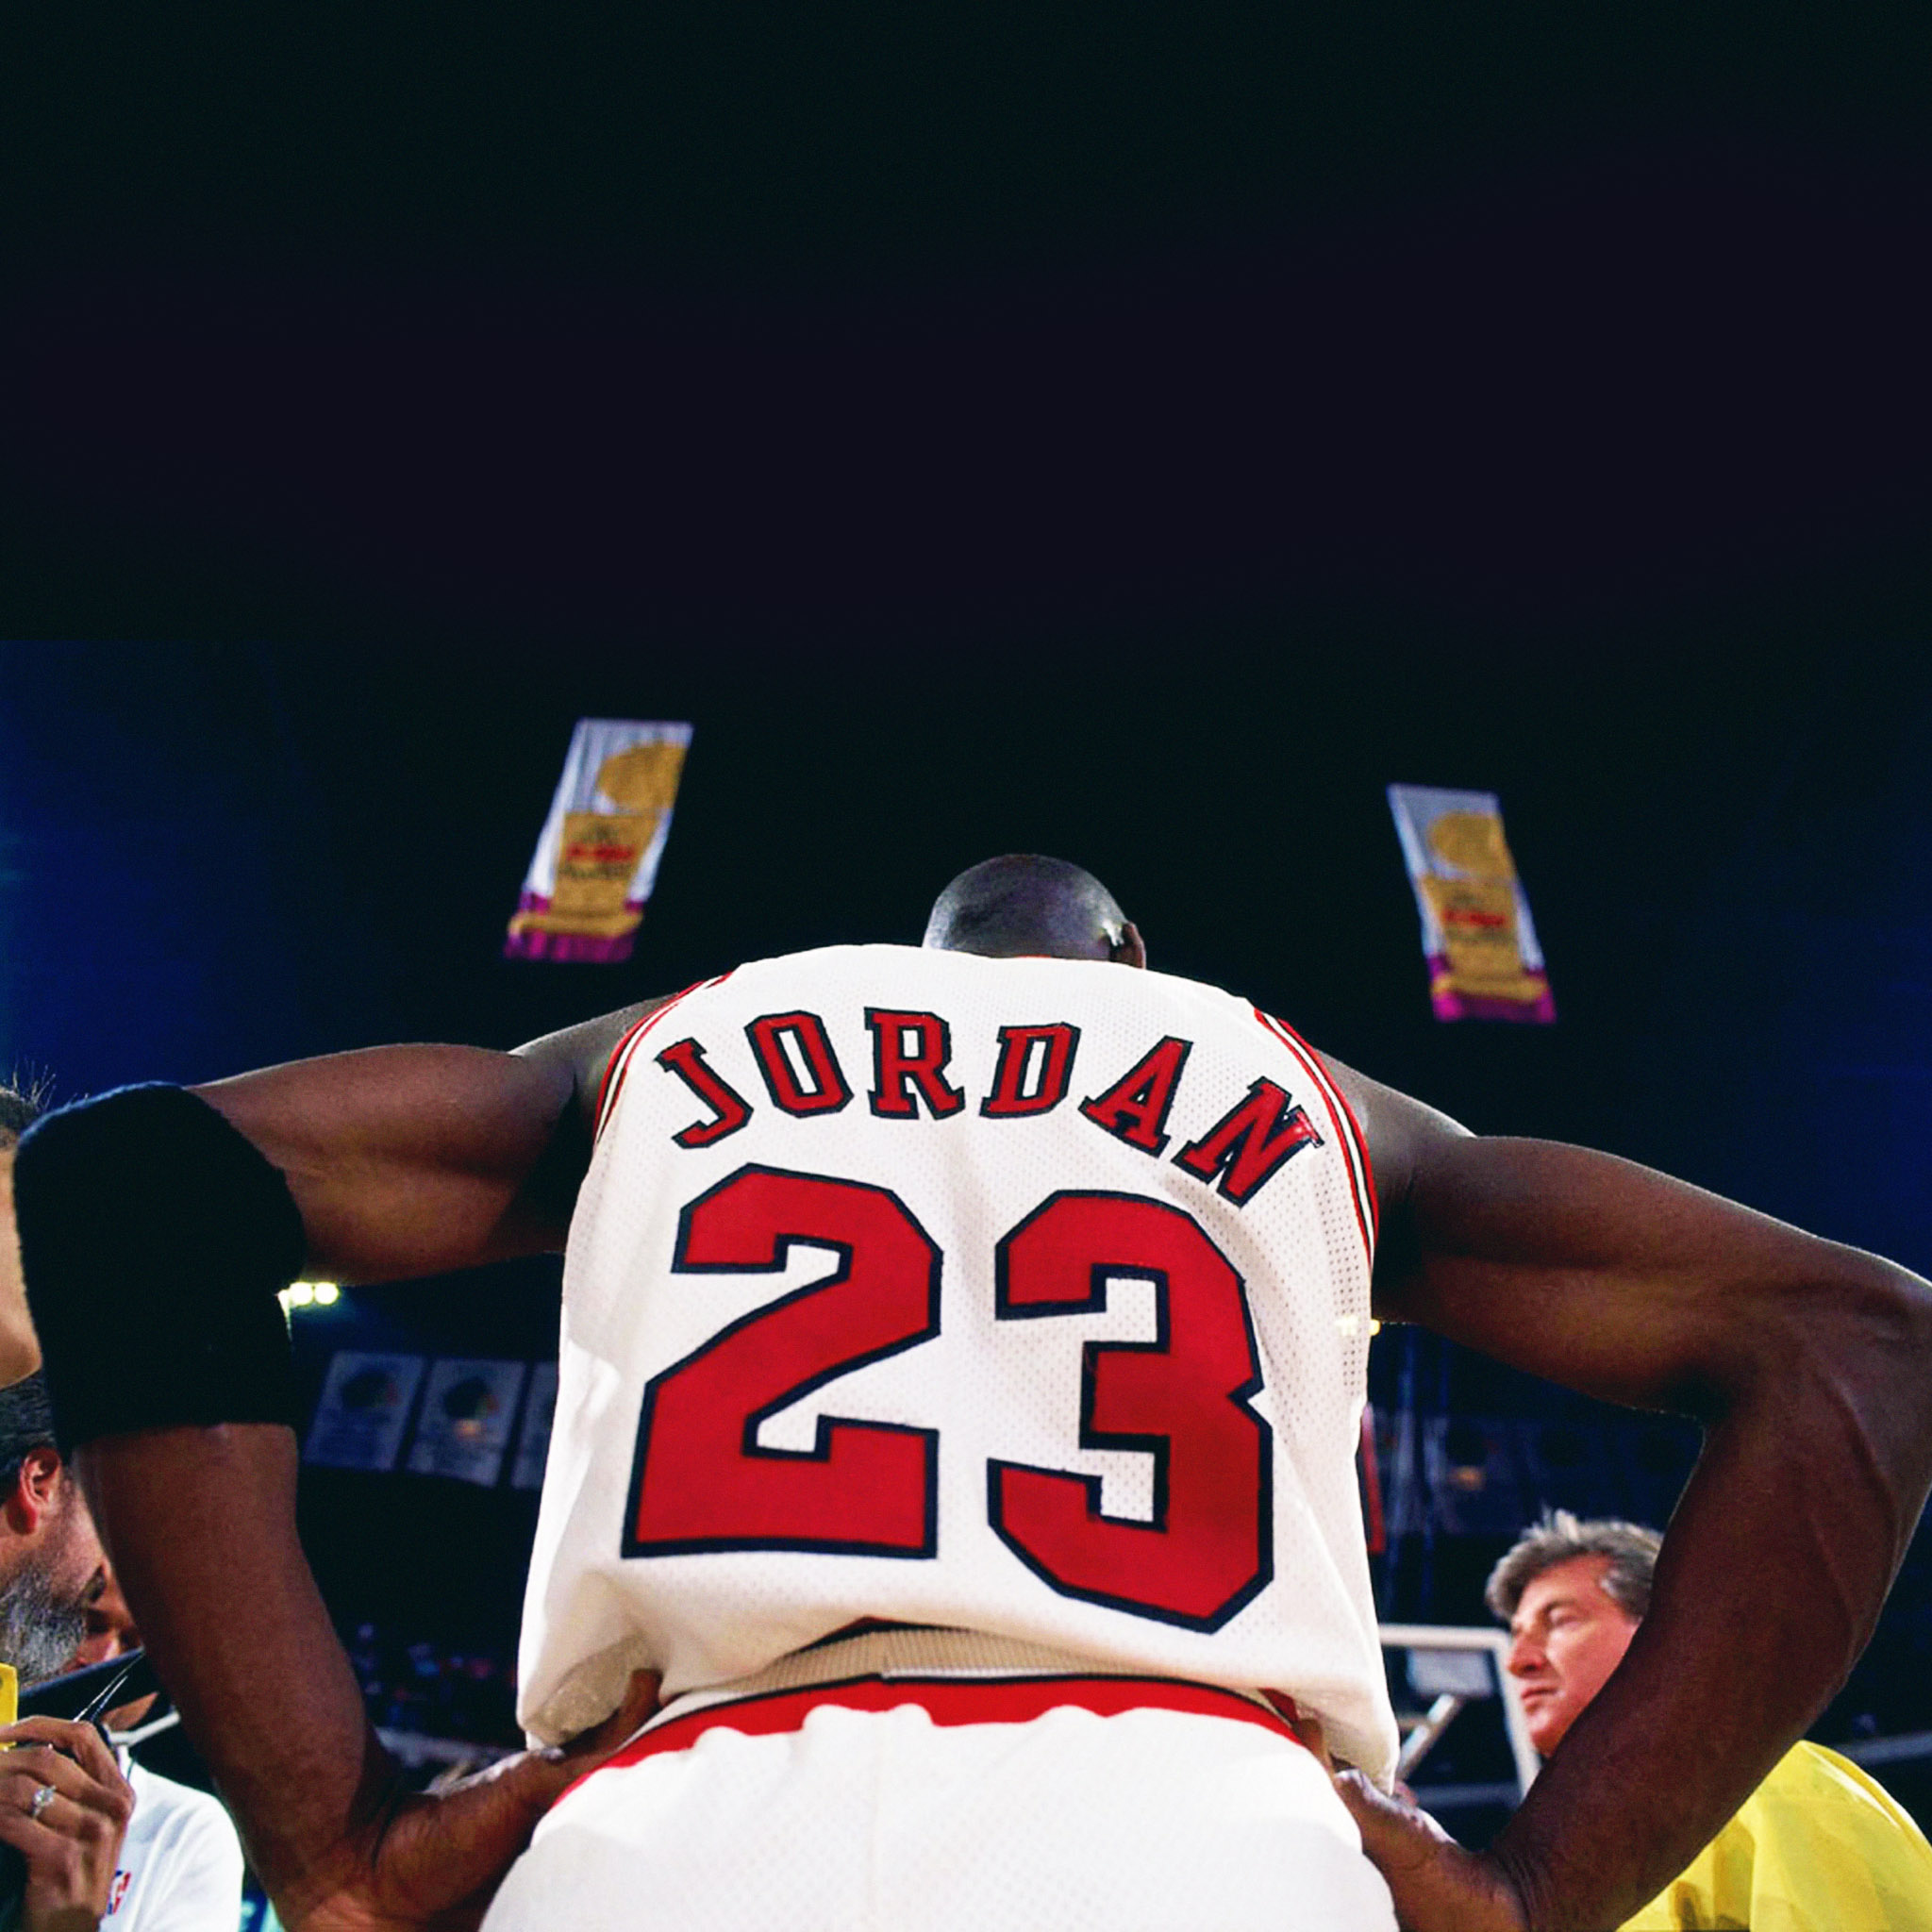 por otra parte, Meandro difícil de complacer  Parallax Hd Iphone Ipad Wallpaper - Michael Jordan Fondo De Pantalla -  2048x2048 - Download HD Wallpaper - WallpaperTip